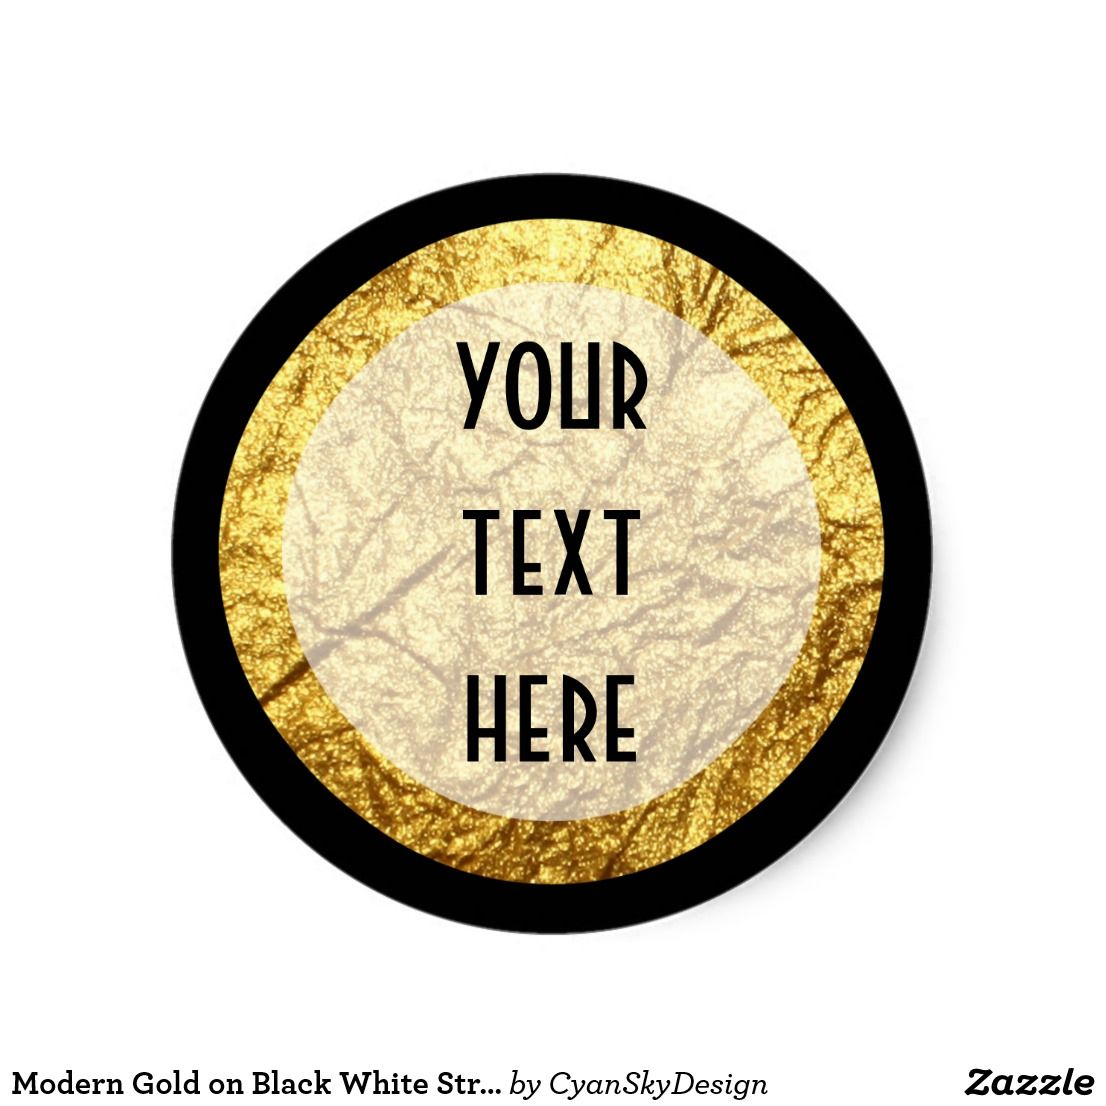 Modern gold on black white stripe luxury boutique classic round sticker • custom personalized text product packaging labels by cyanskydesign on zazzle